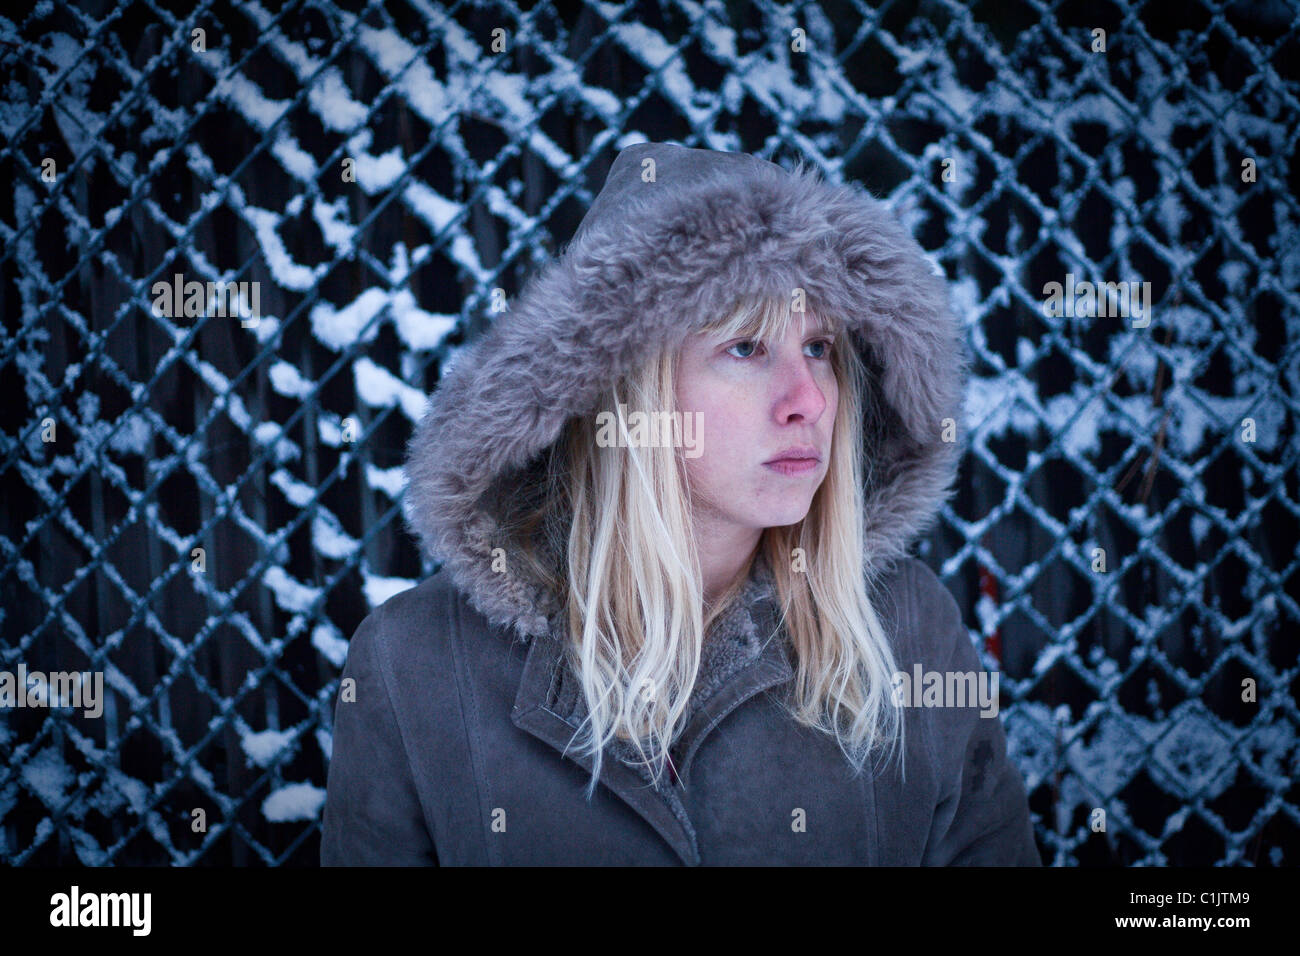 girl against fence in snow looking mad - Stock Image